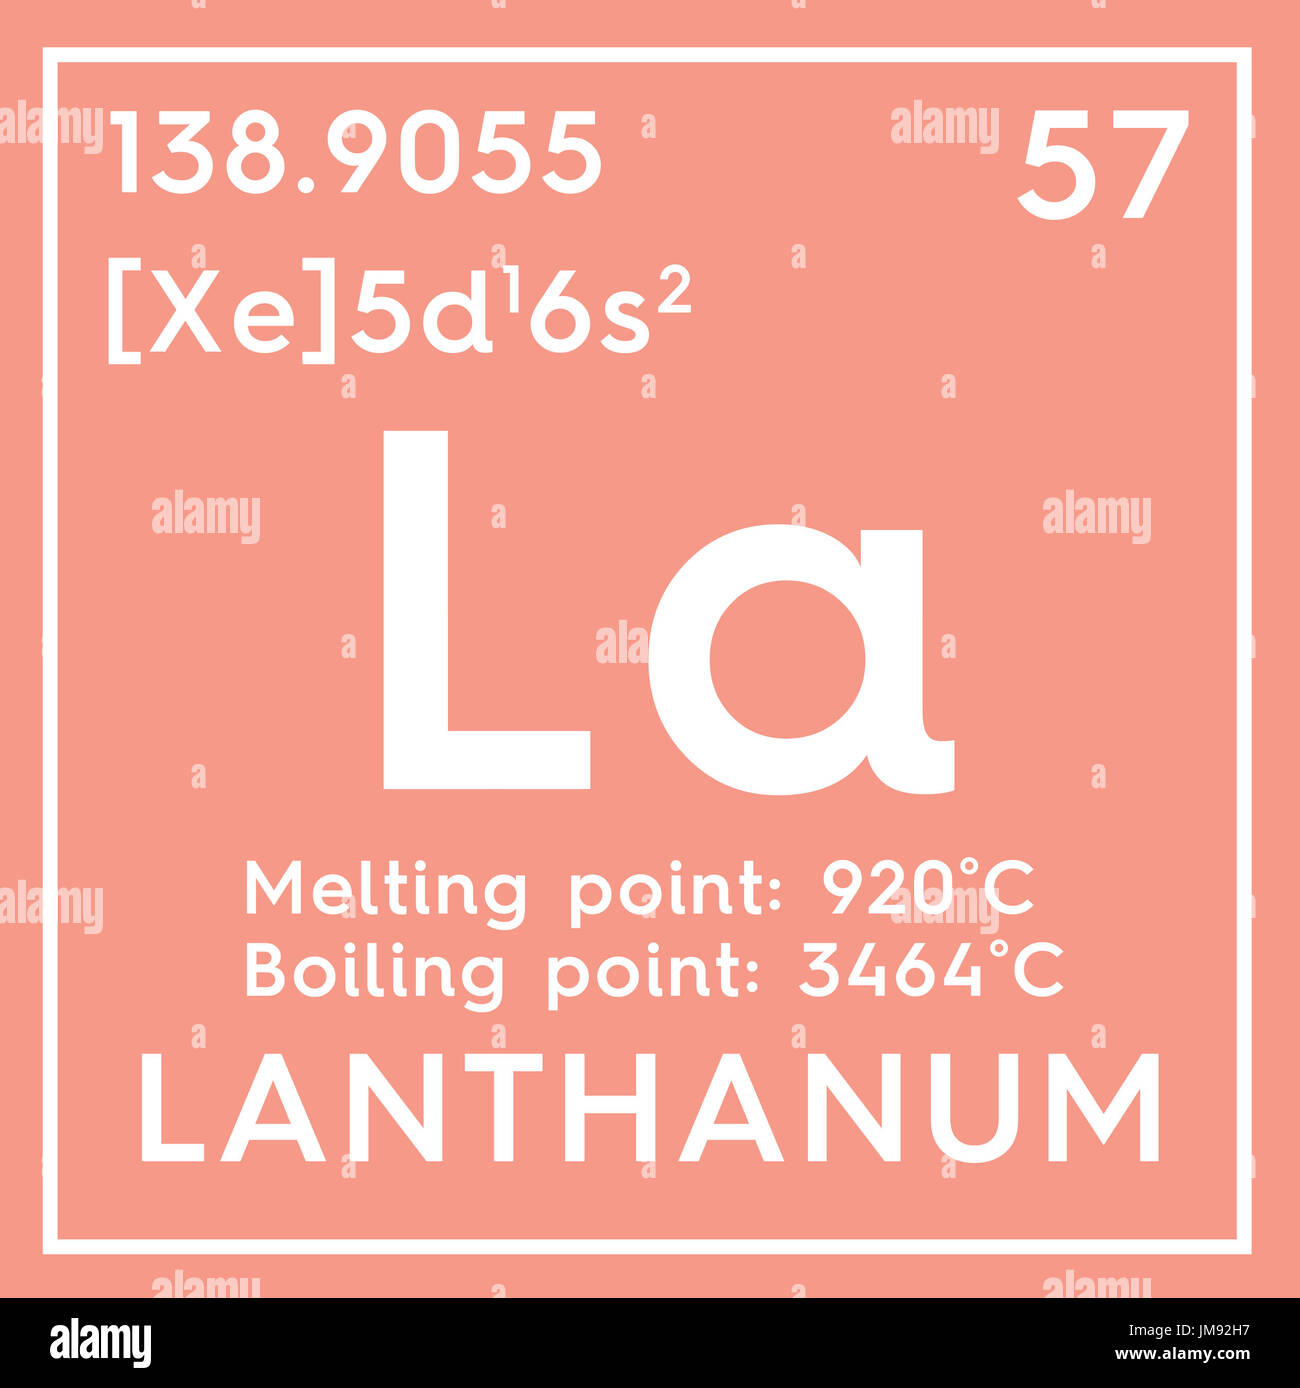 Steel symbol periodic table images periodic table images lanthanum periodic table image collections periodic table images symbol chemical element lanthanum stock photos symbol chemical gamestrikefo Choice Image